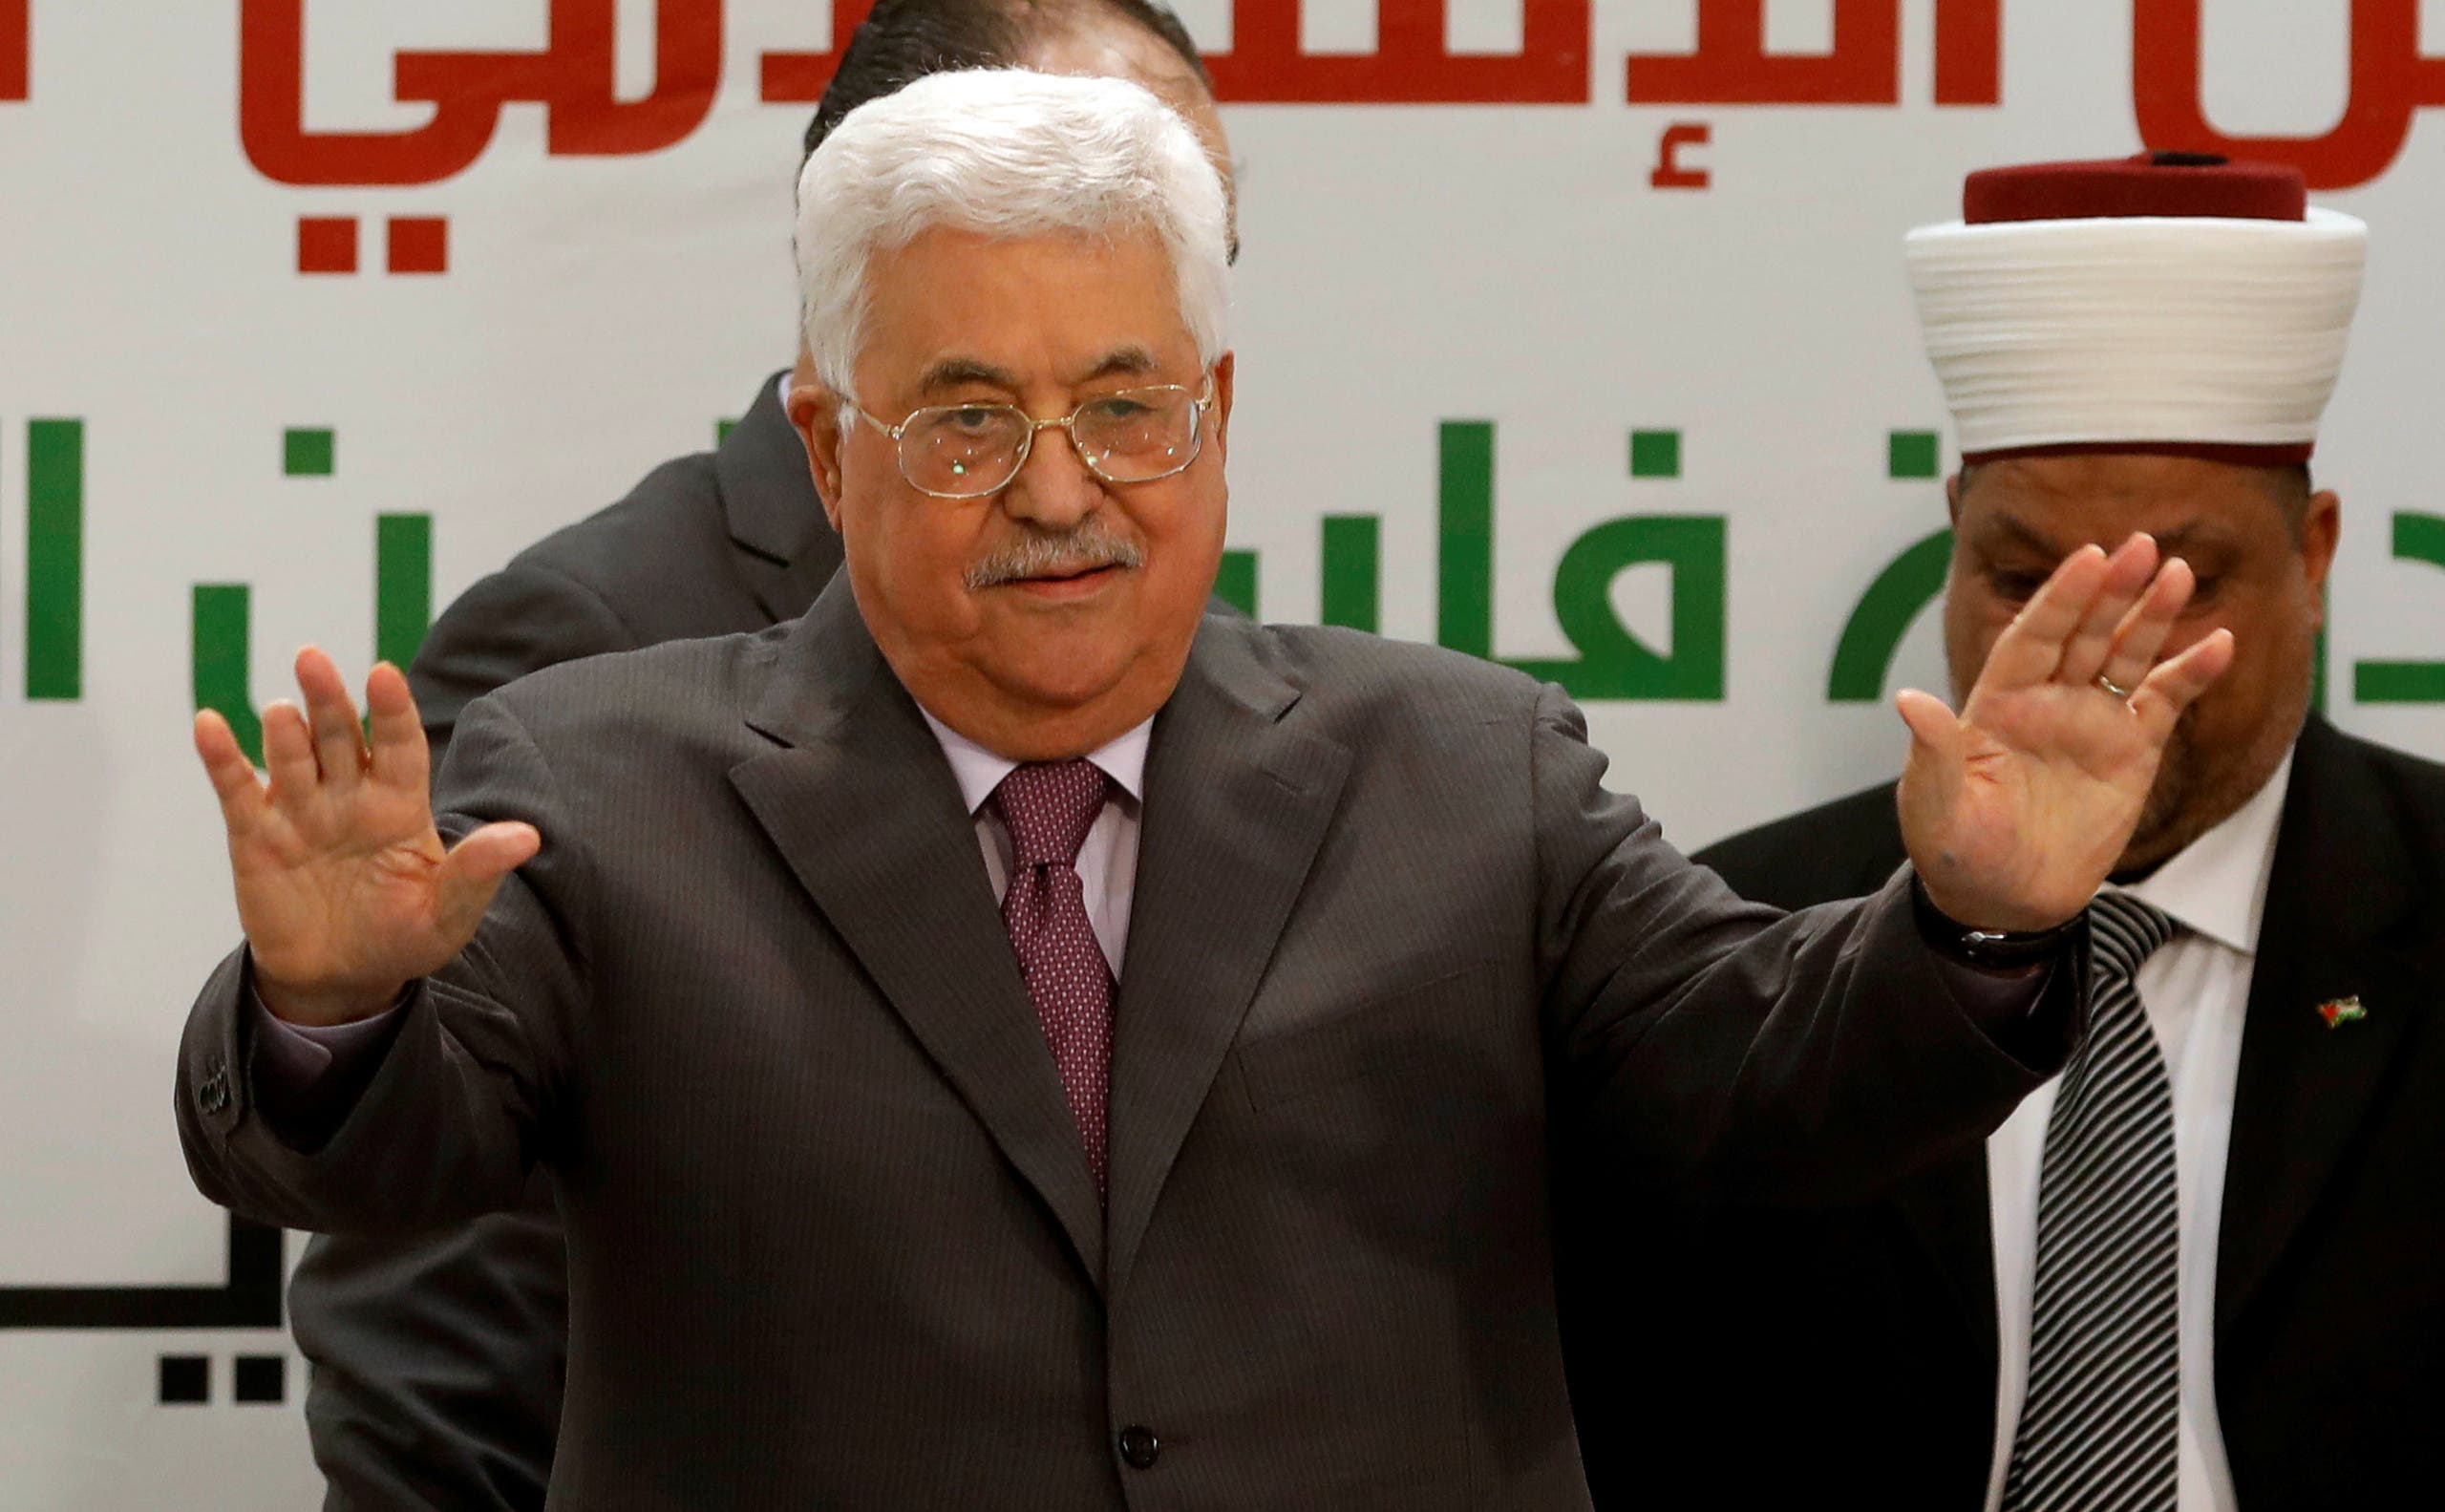 Mahmoud Abbas gestures during a conference in Ramallah on April 11, 2018. (Reuters)